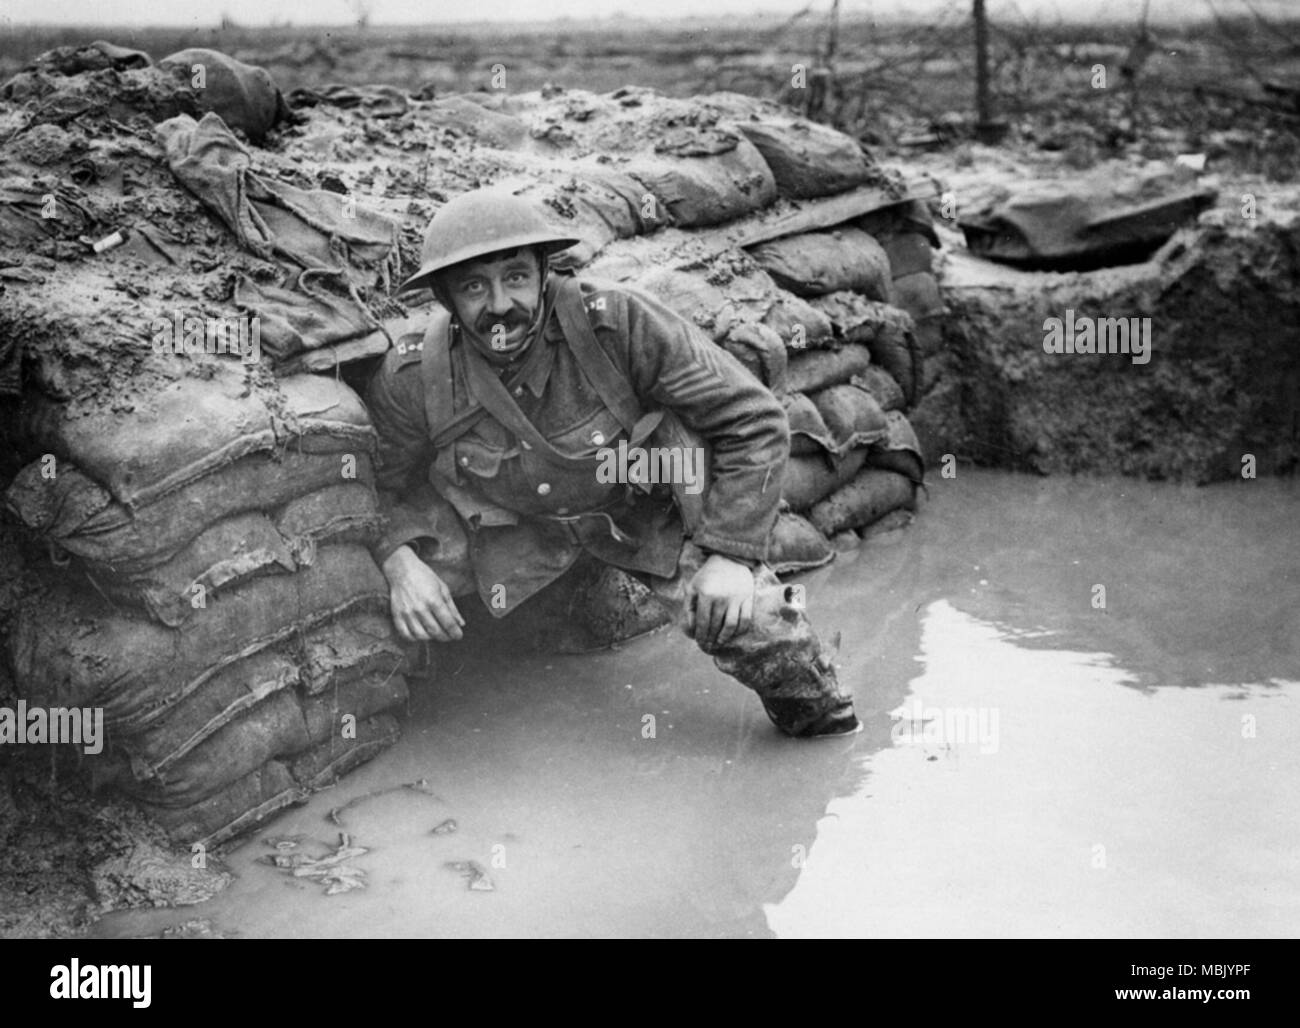 Muddling through the Front Lines - Stock Image